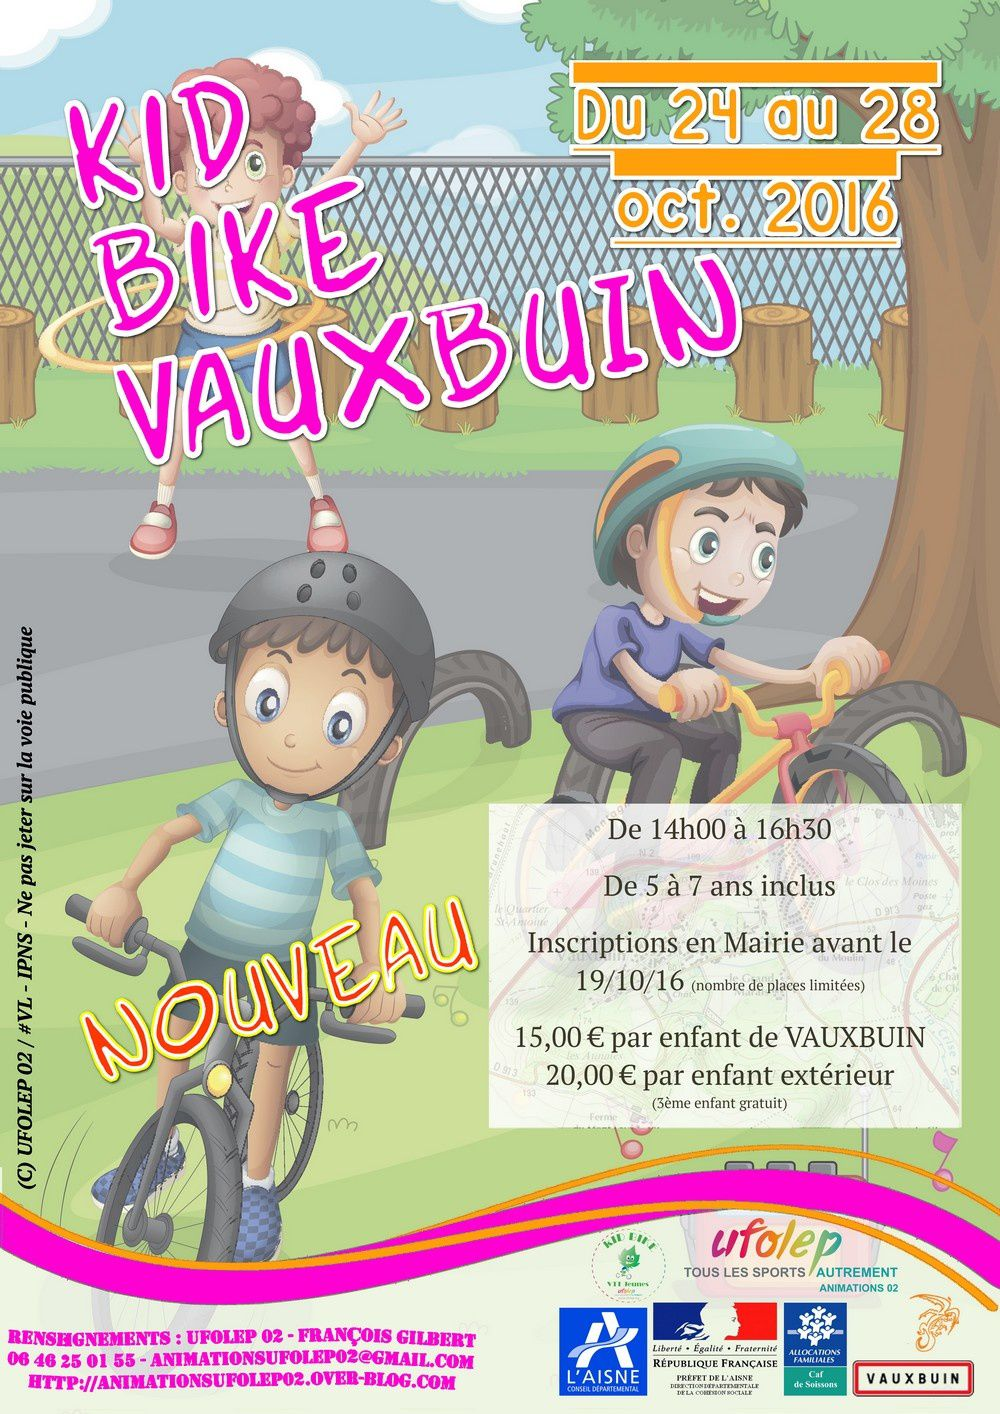 Kid Bike - VAUXBUIN - Octobre 2016